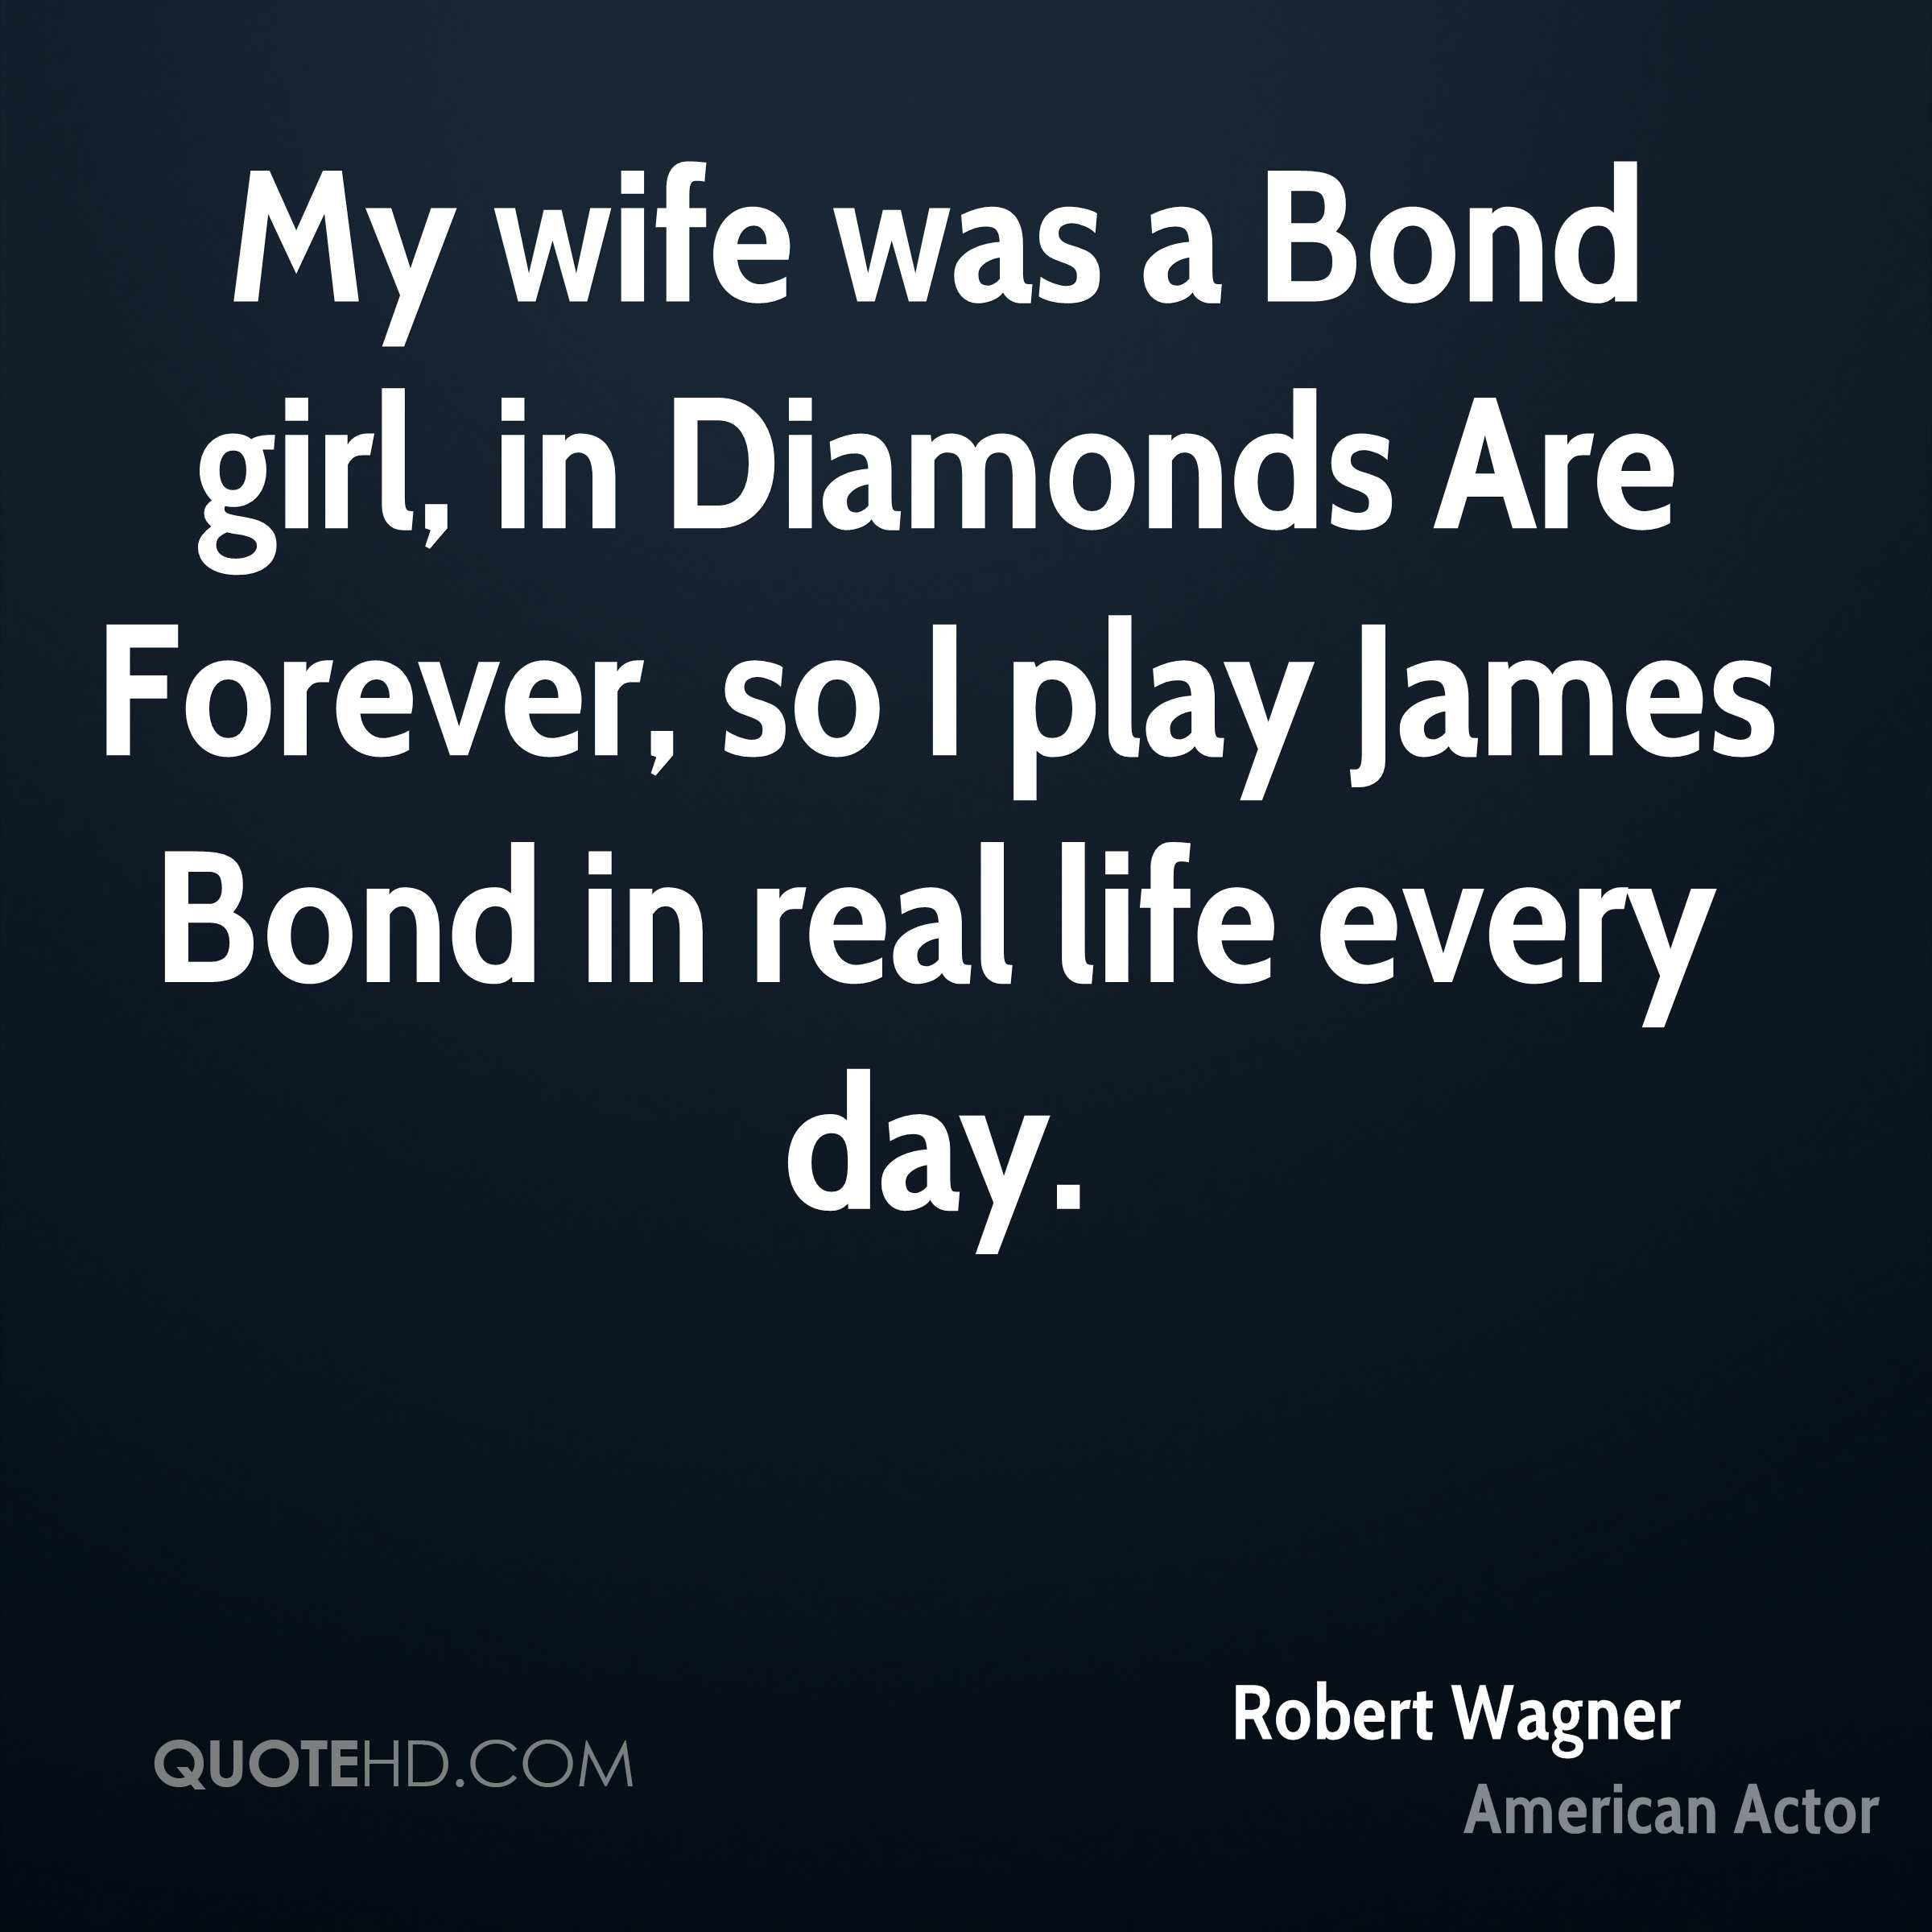 My wife was a Bond girl, in Diamonds Are Forever, so I play James Bond in real life every day.